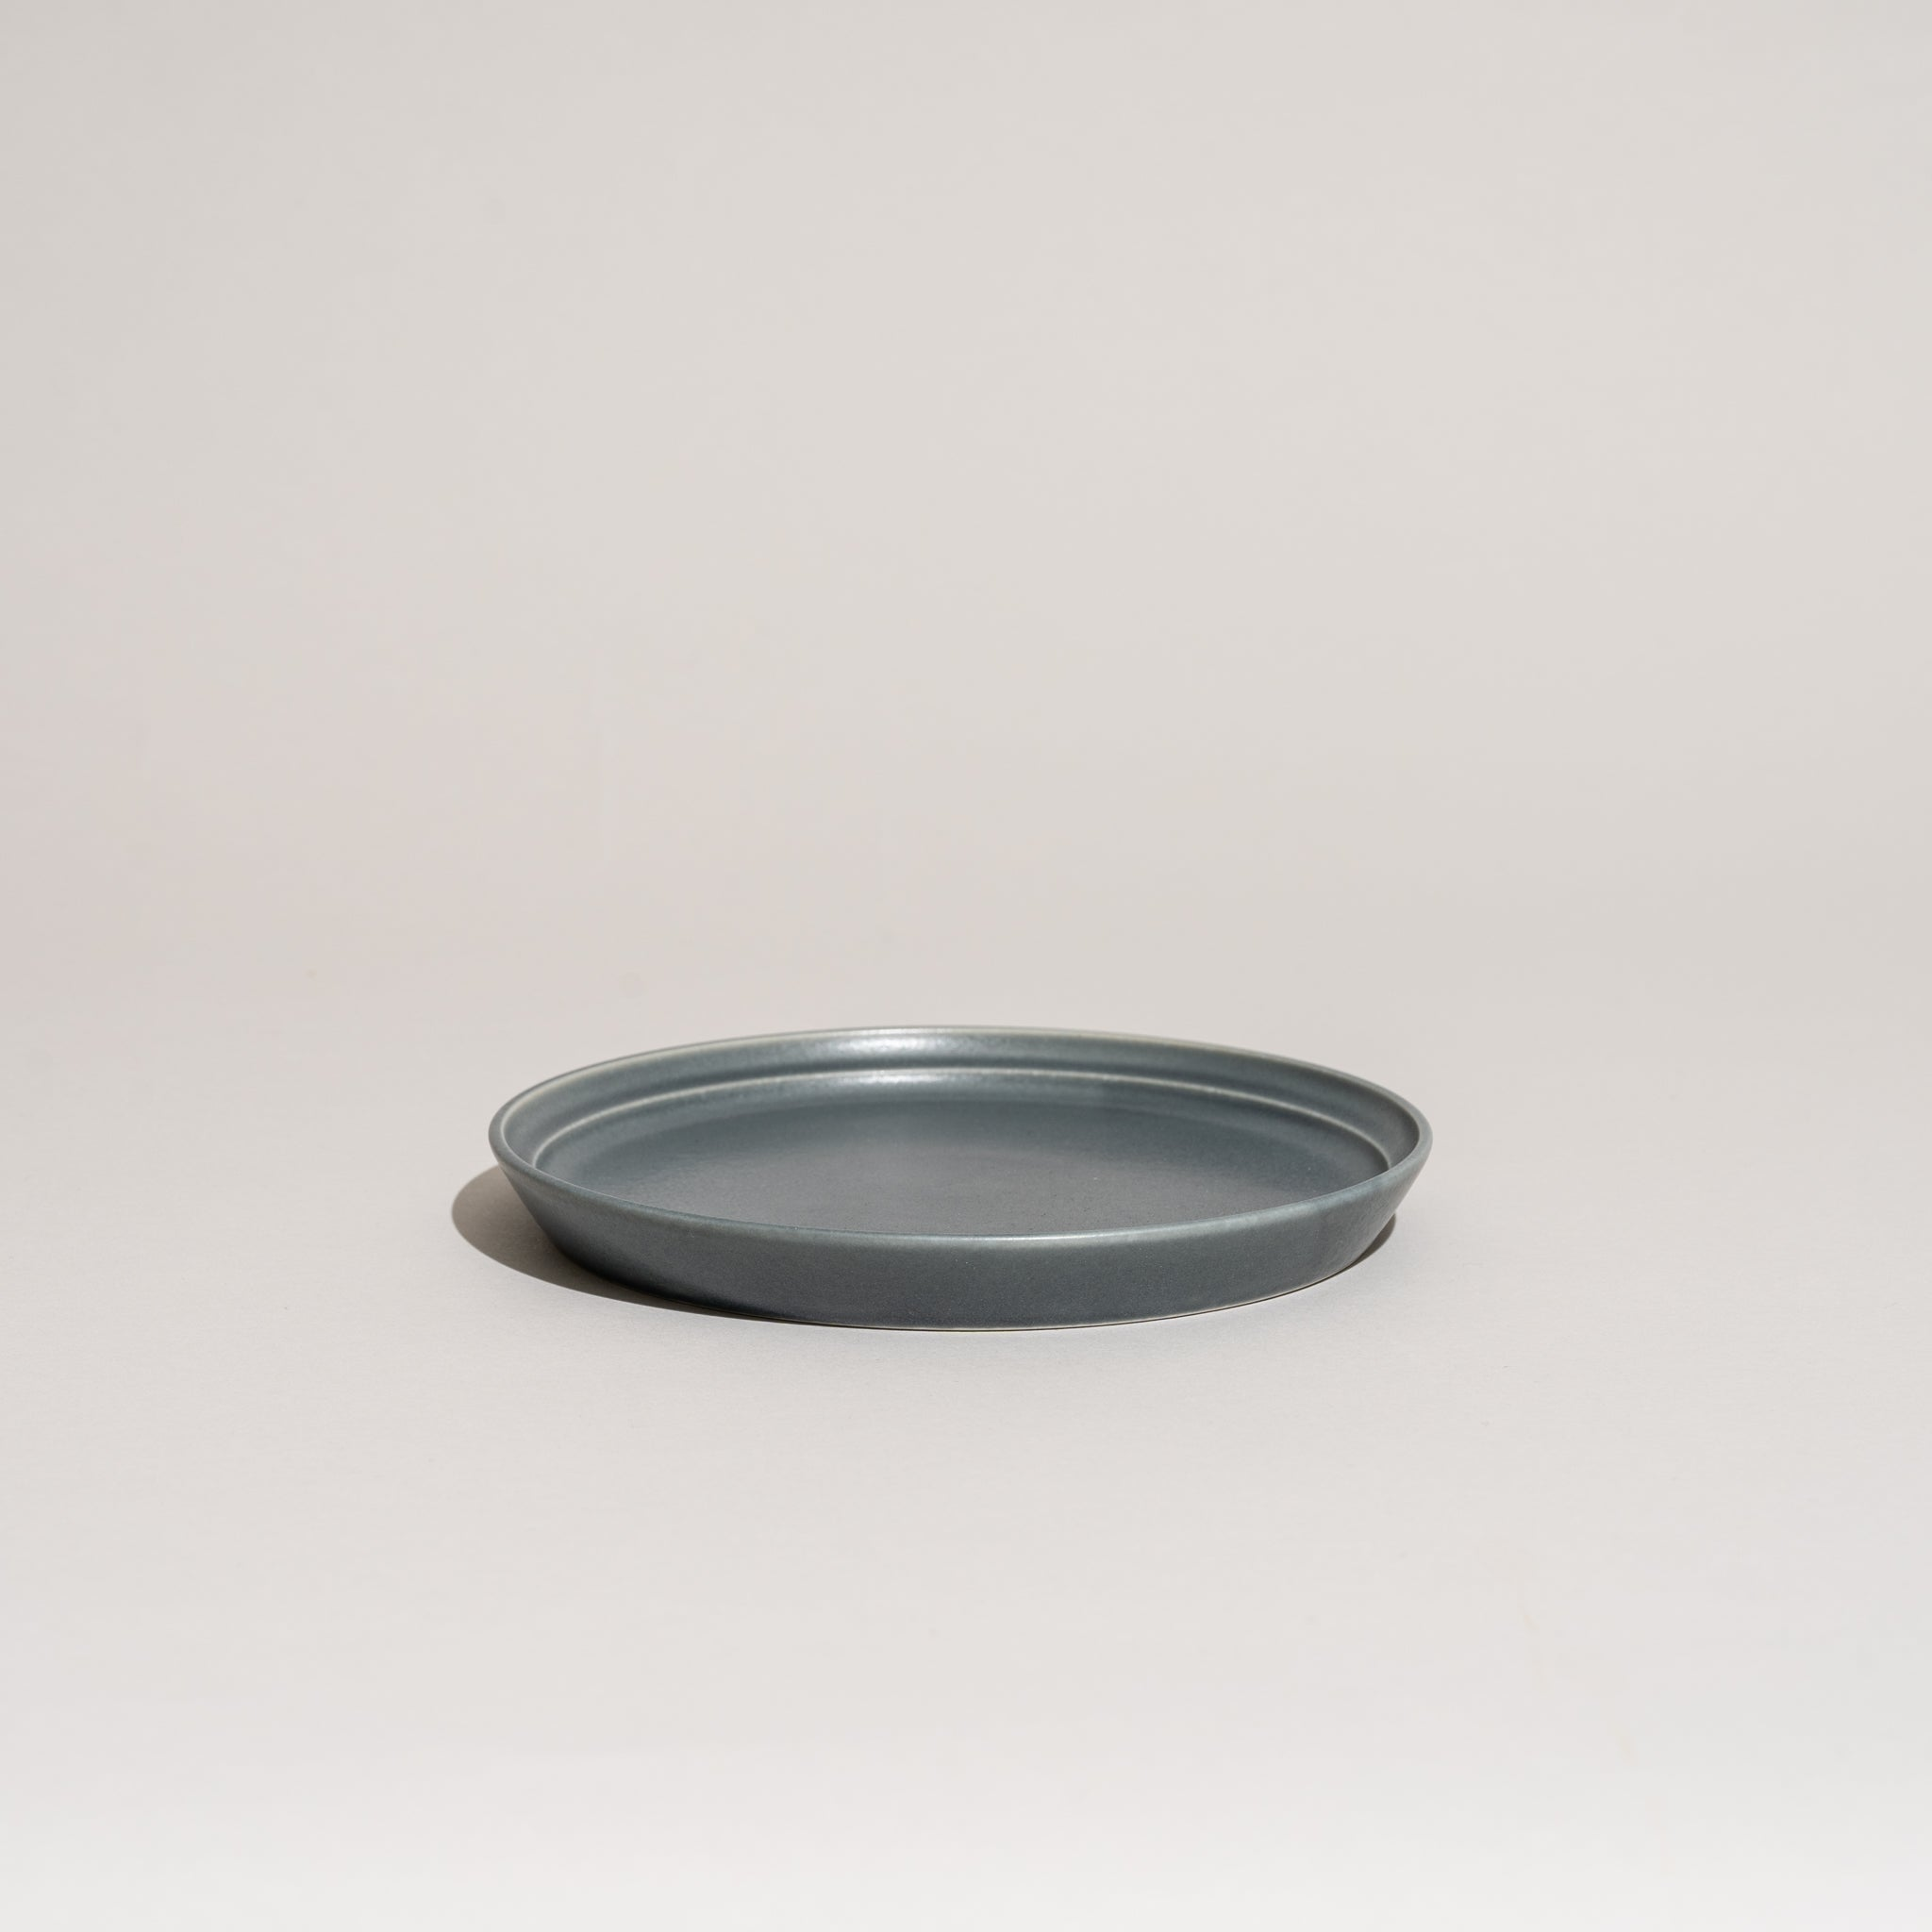 "Fog Plate (6.4"" - Dark Gray)"